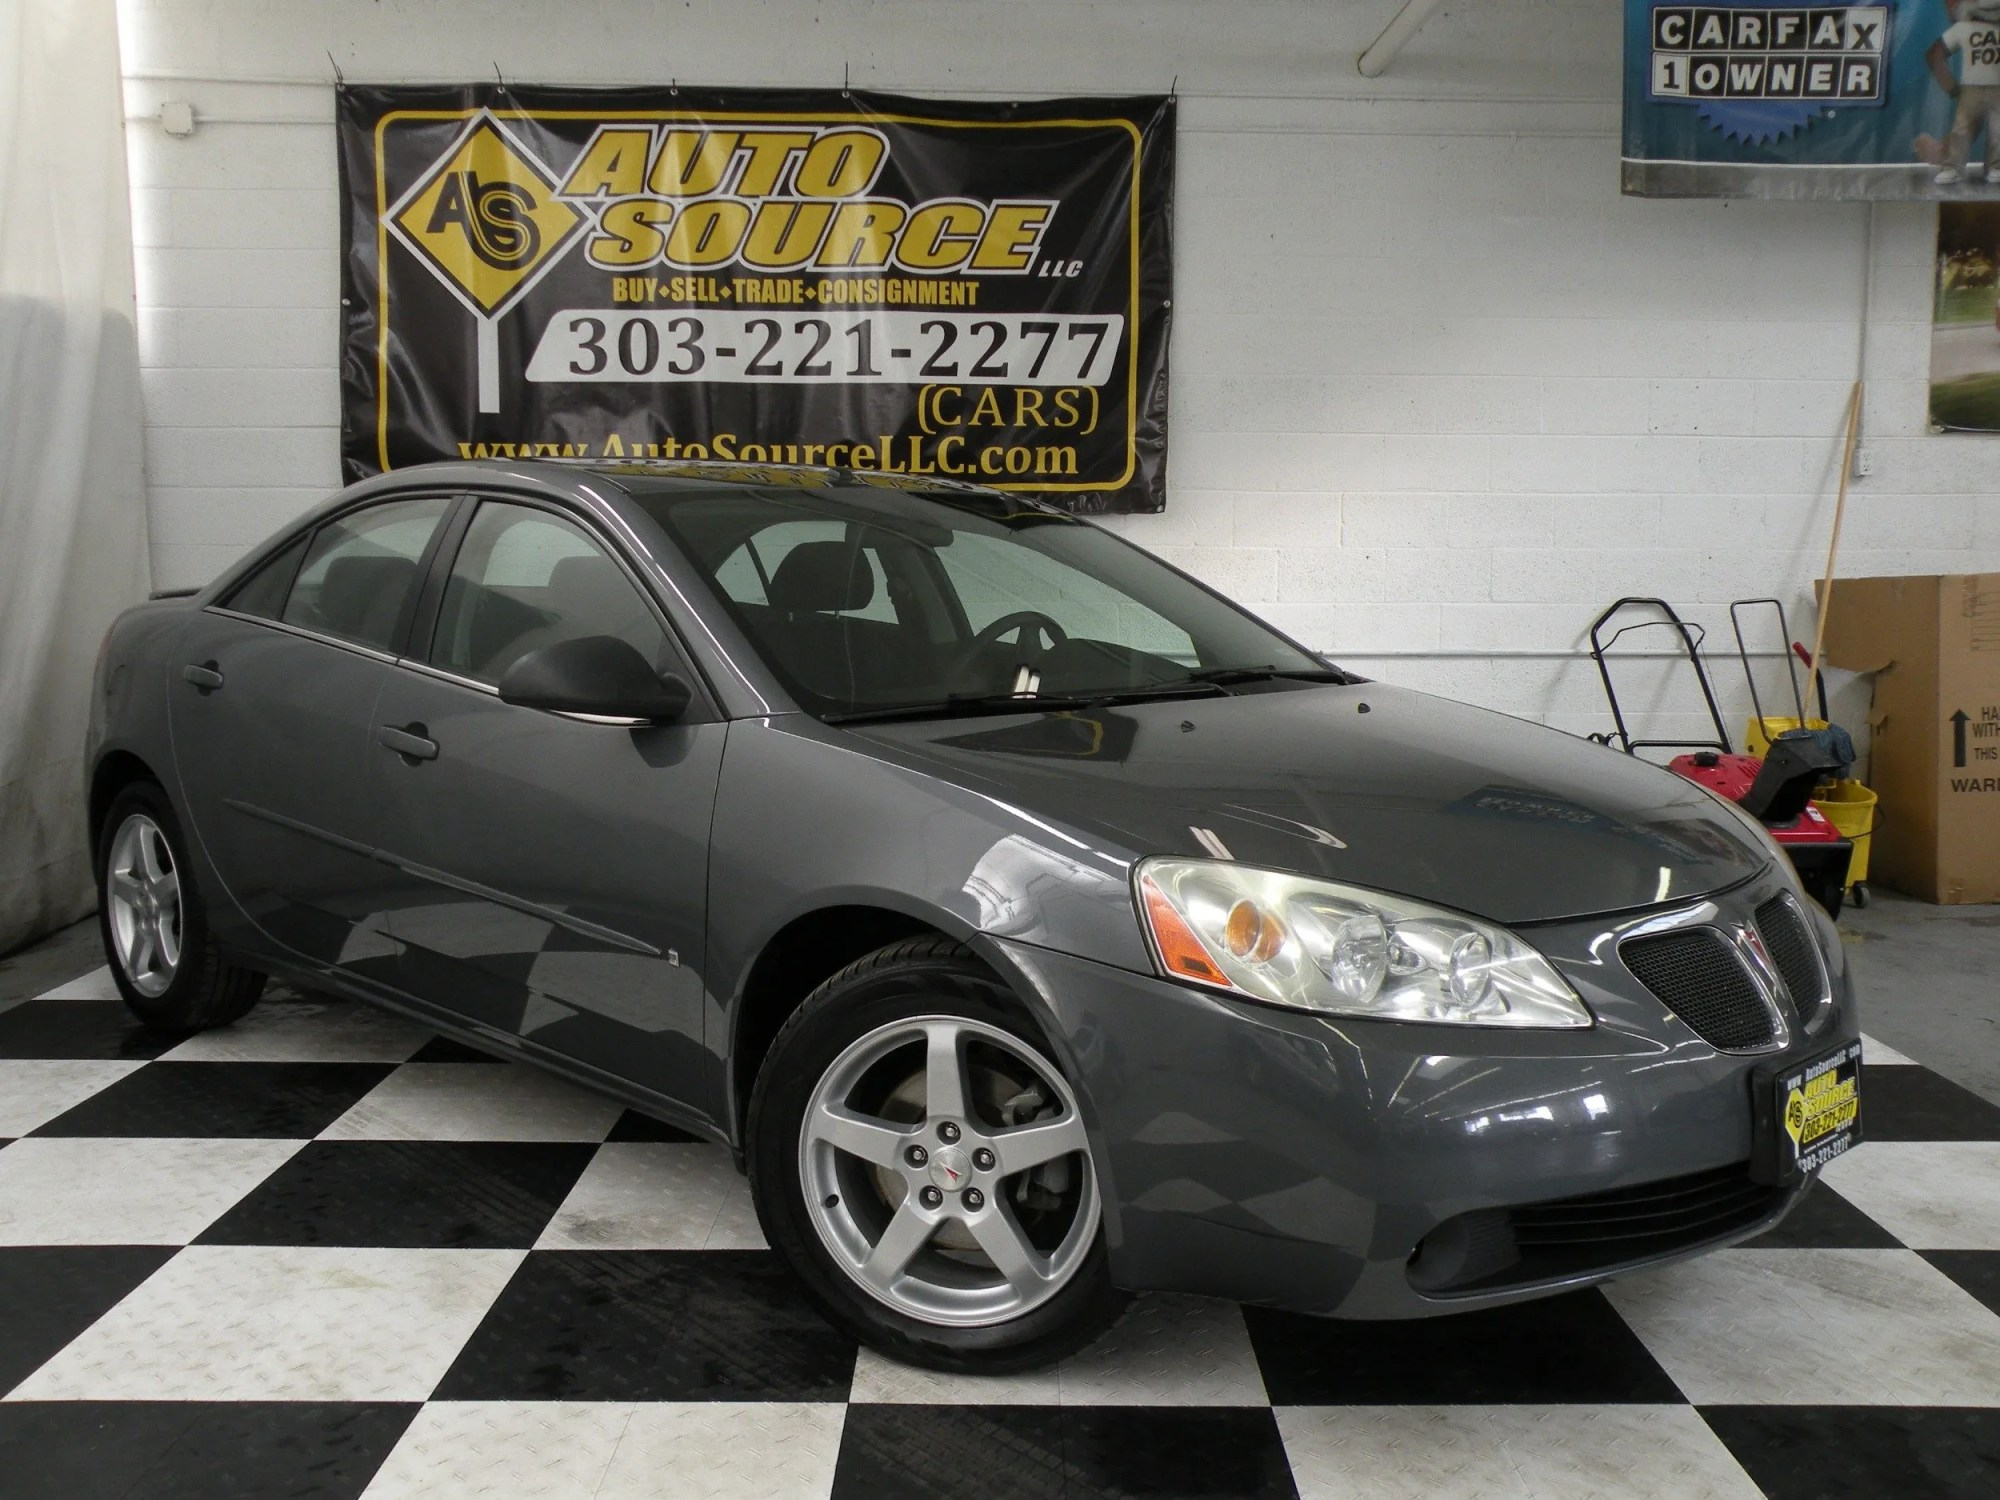 hight resolution of 2007 pontiac g6 ultra clean 1 owner car with warranty included